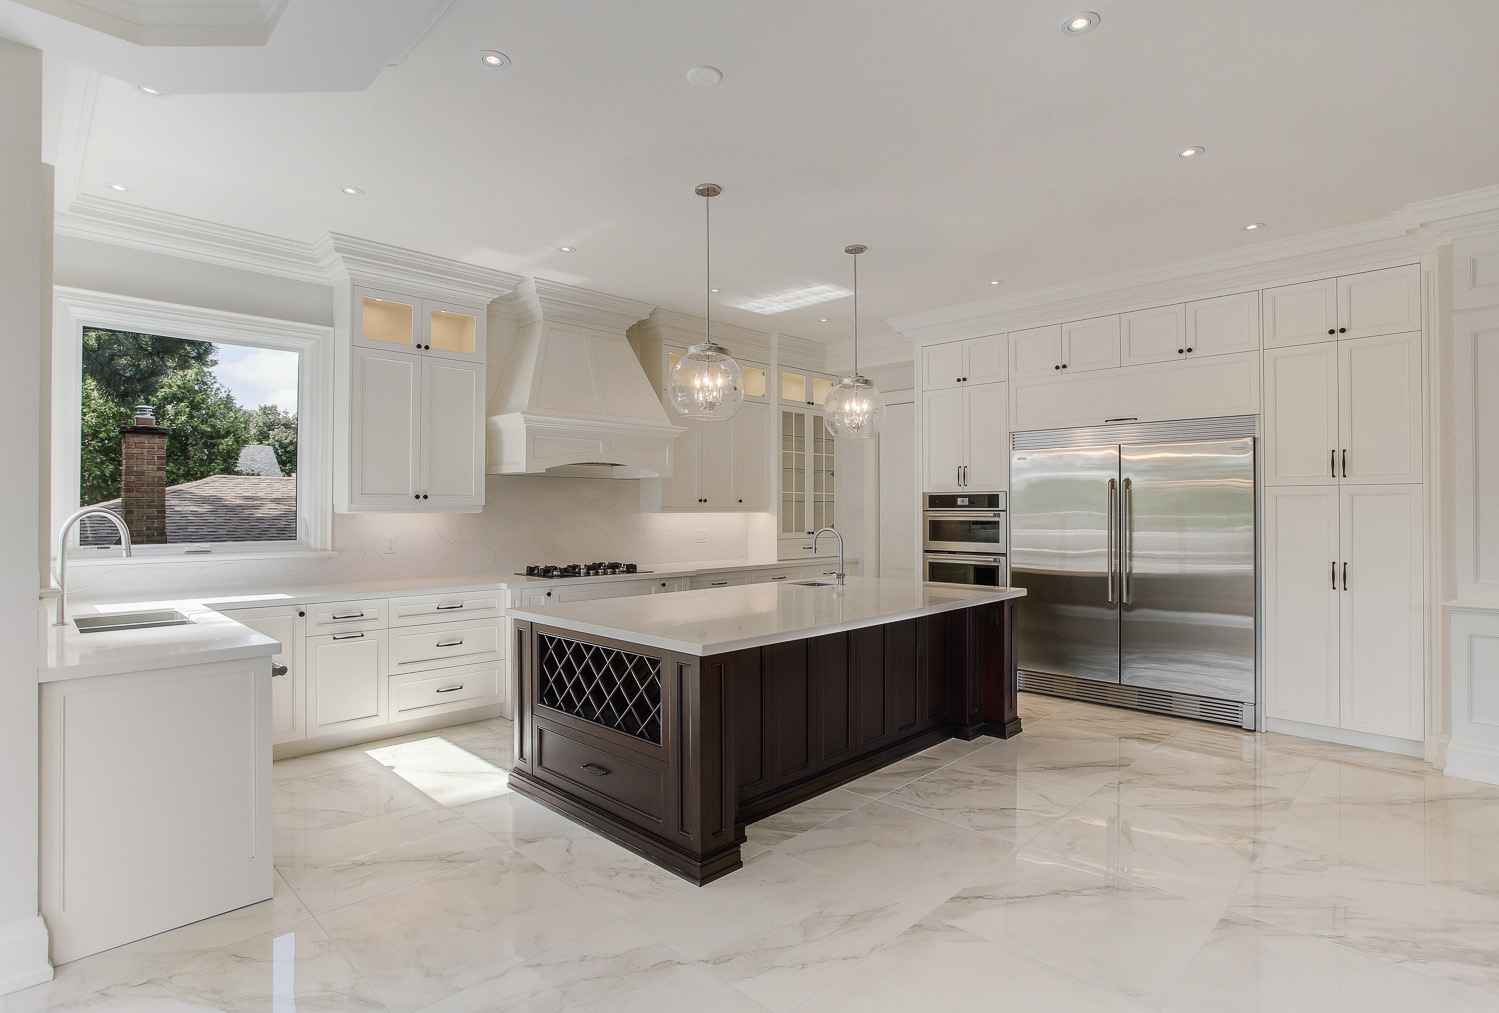 Toronto custom home kitchen